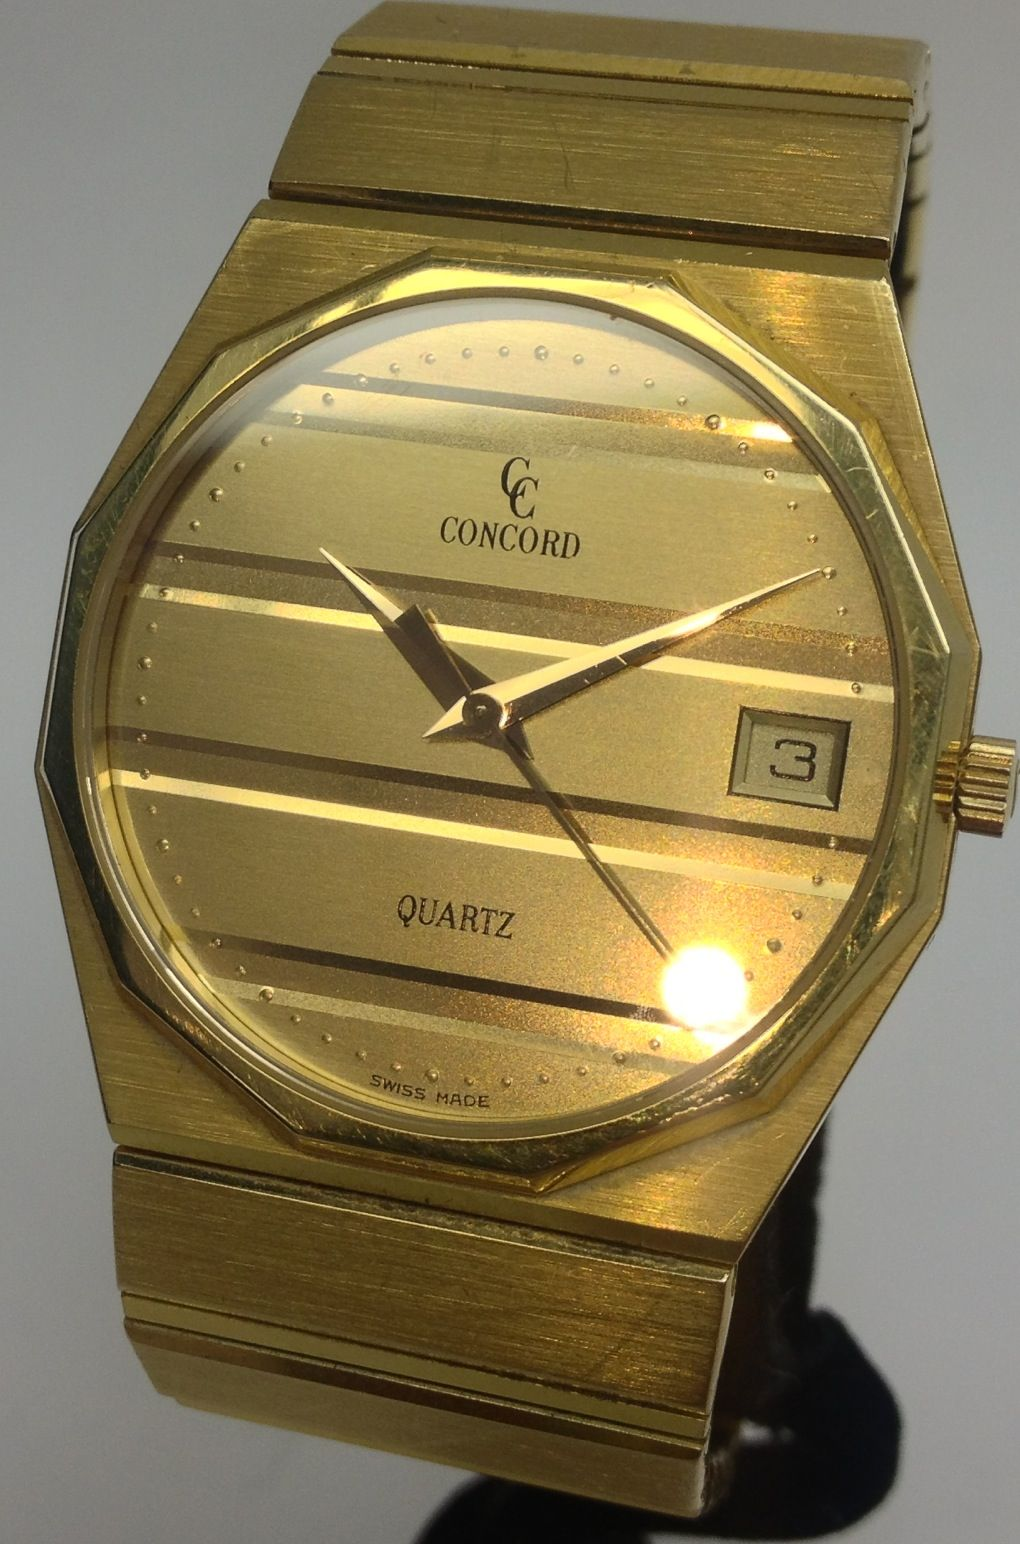 concord mariner mens watch solid 18k yellow gold coming soon concord mariner mens watch solid 18k yellow gold coming soon easy on